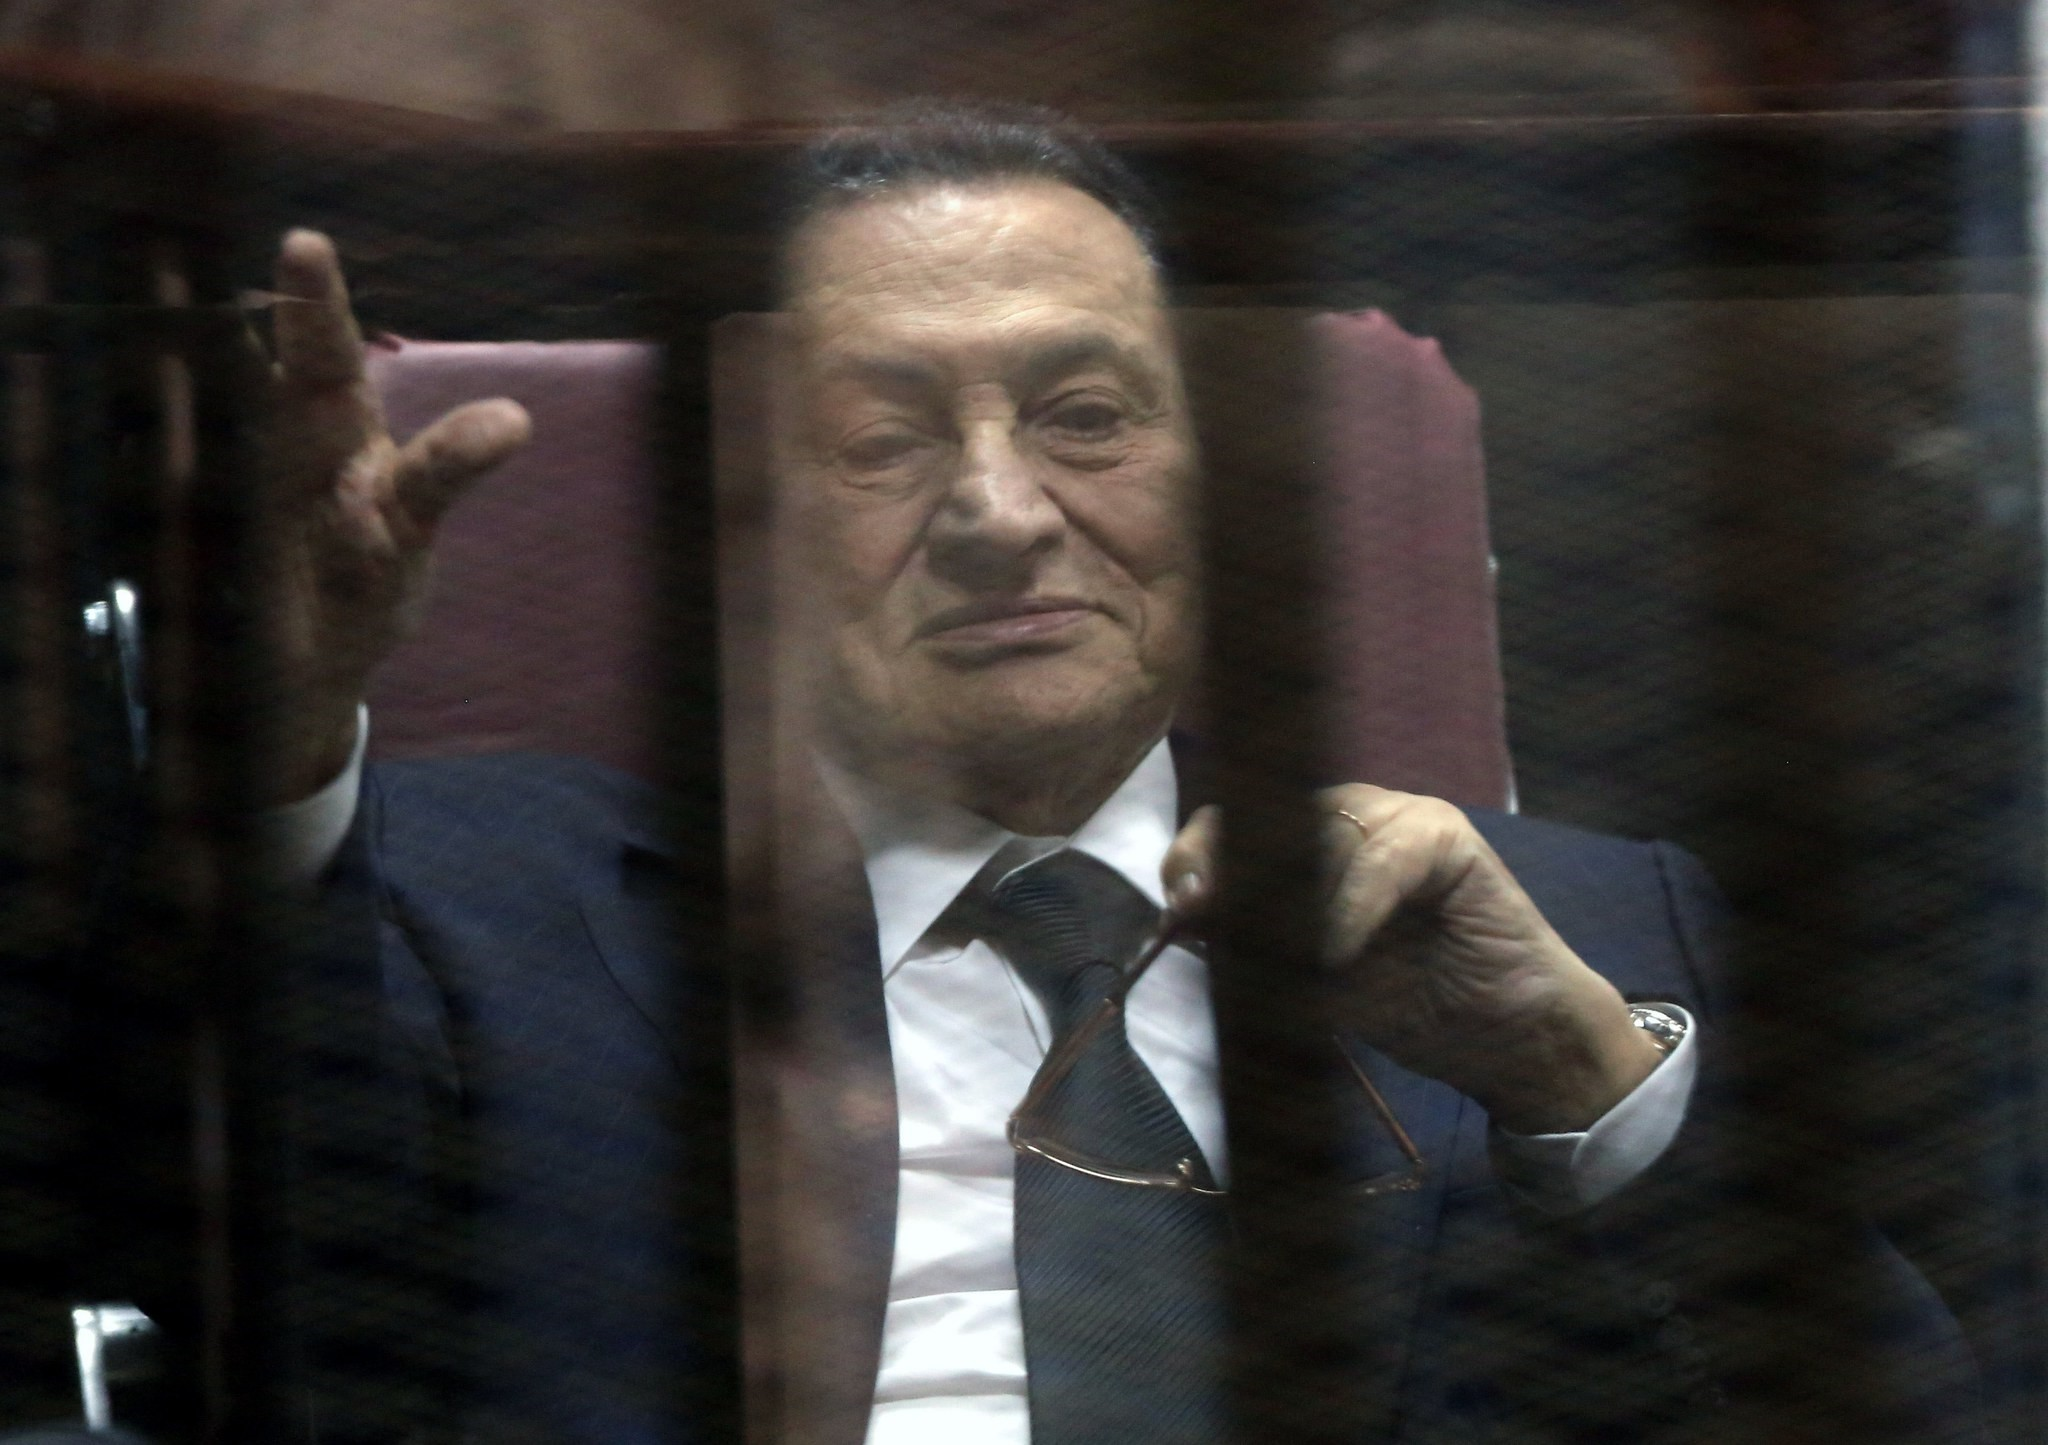 Former Egyptian President Hosni Mubarak waves from defendants' cage at a courtroom during his trial in Cairo, Egypt, 29 April 2015. (EPA Photo)